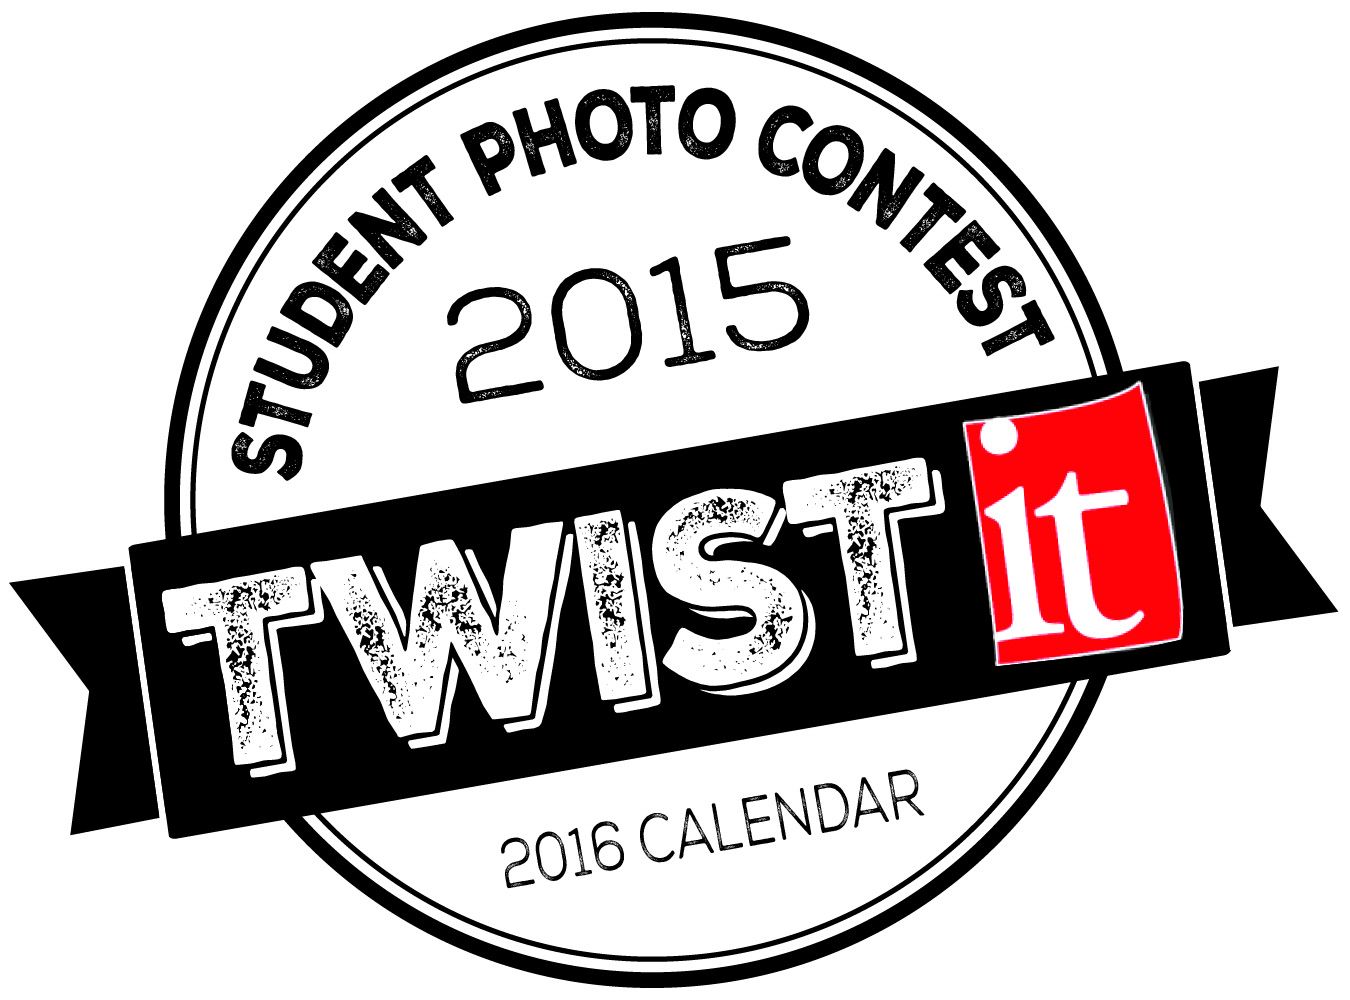 Calendar Photography Submissions : It supplies announces student photo contest at society of